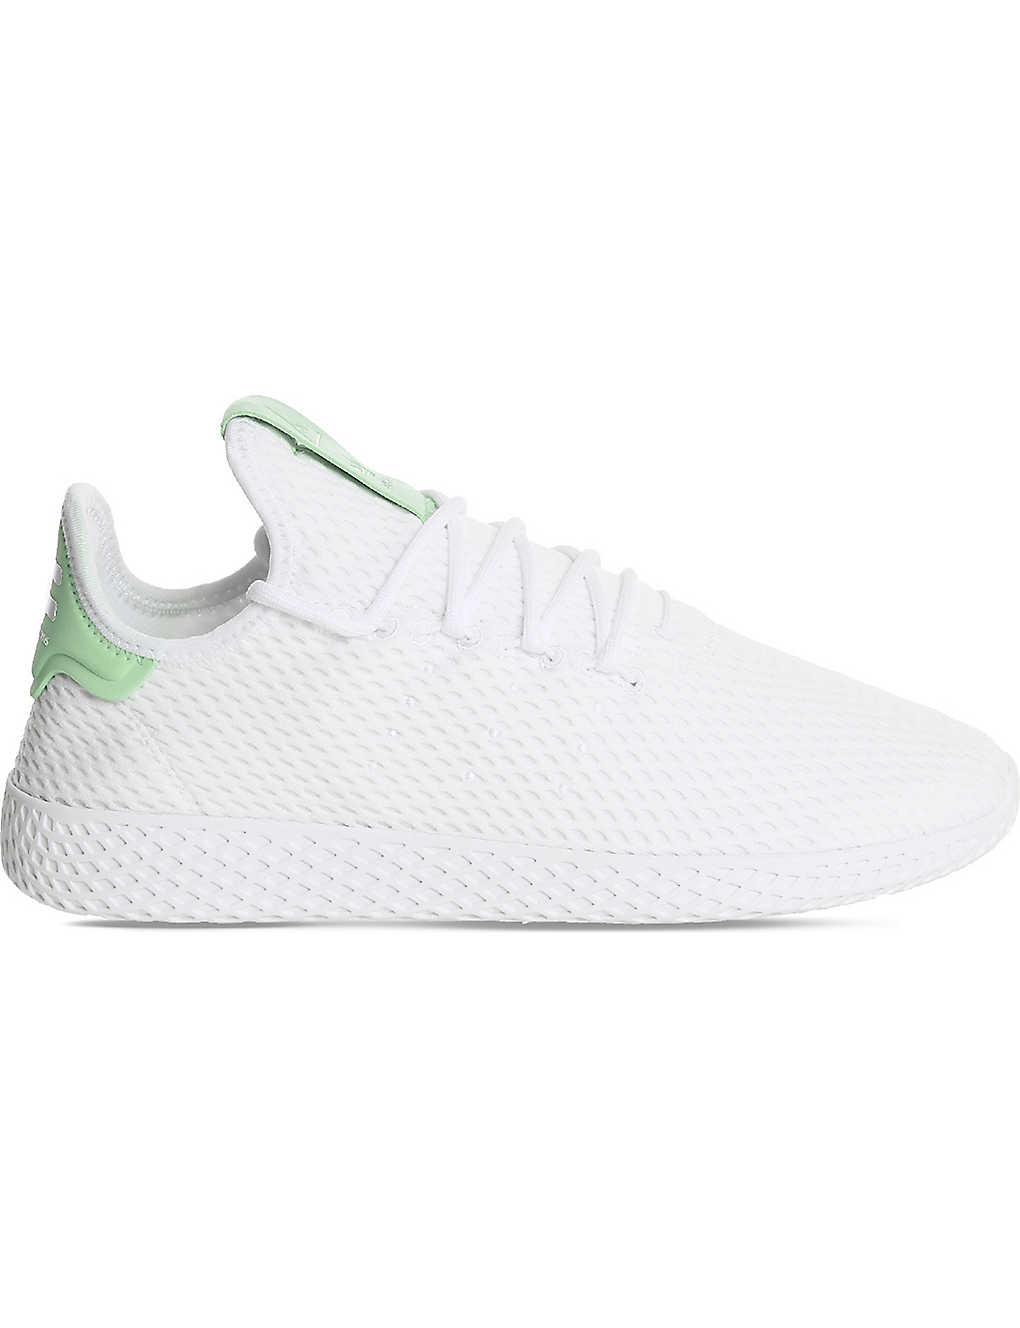 53750a7e9 ADIDAS - Pharrell Williams Tennis HU mesh trainers